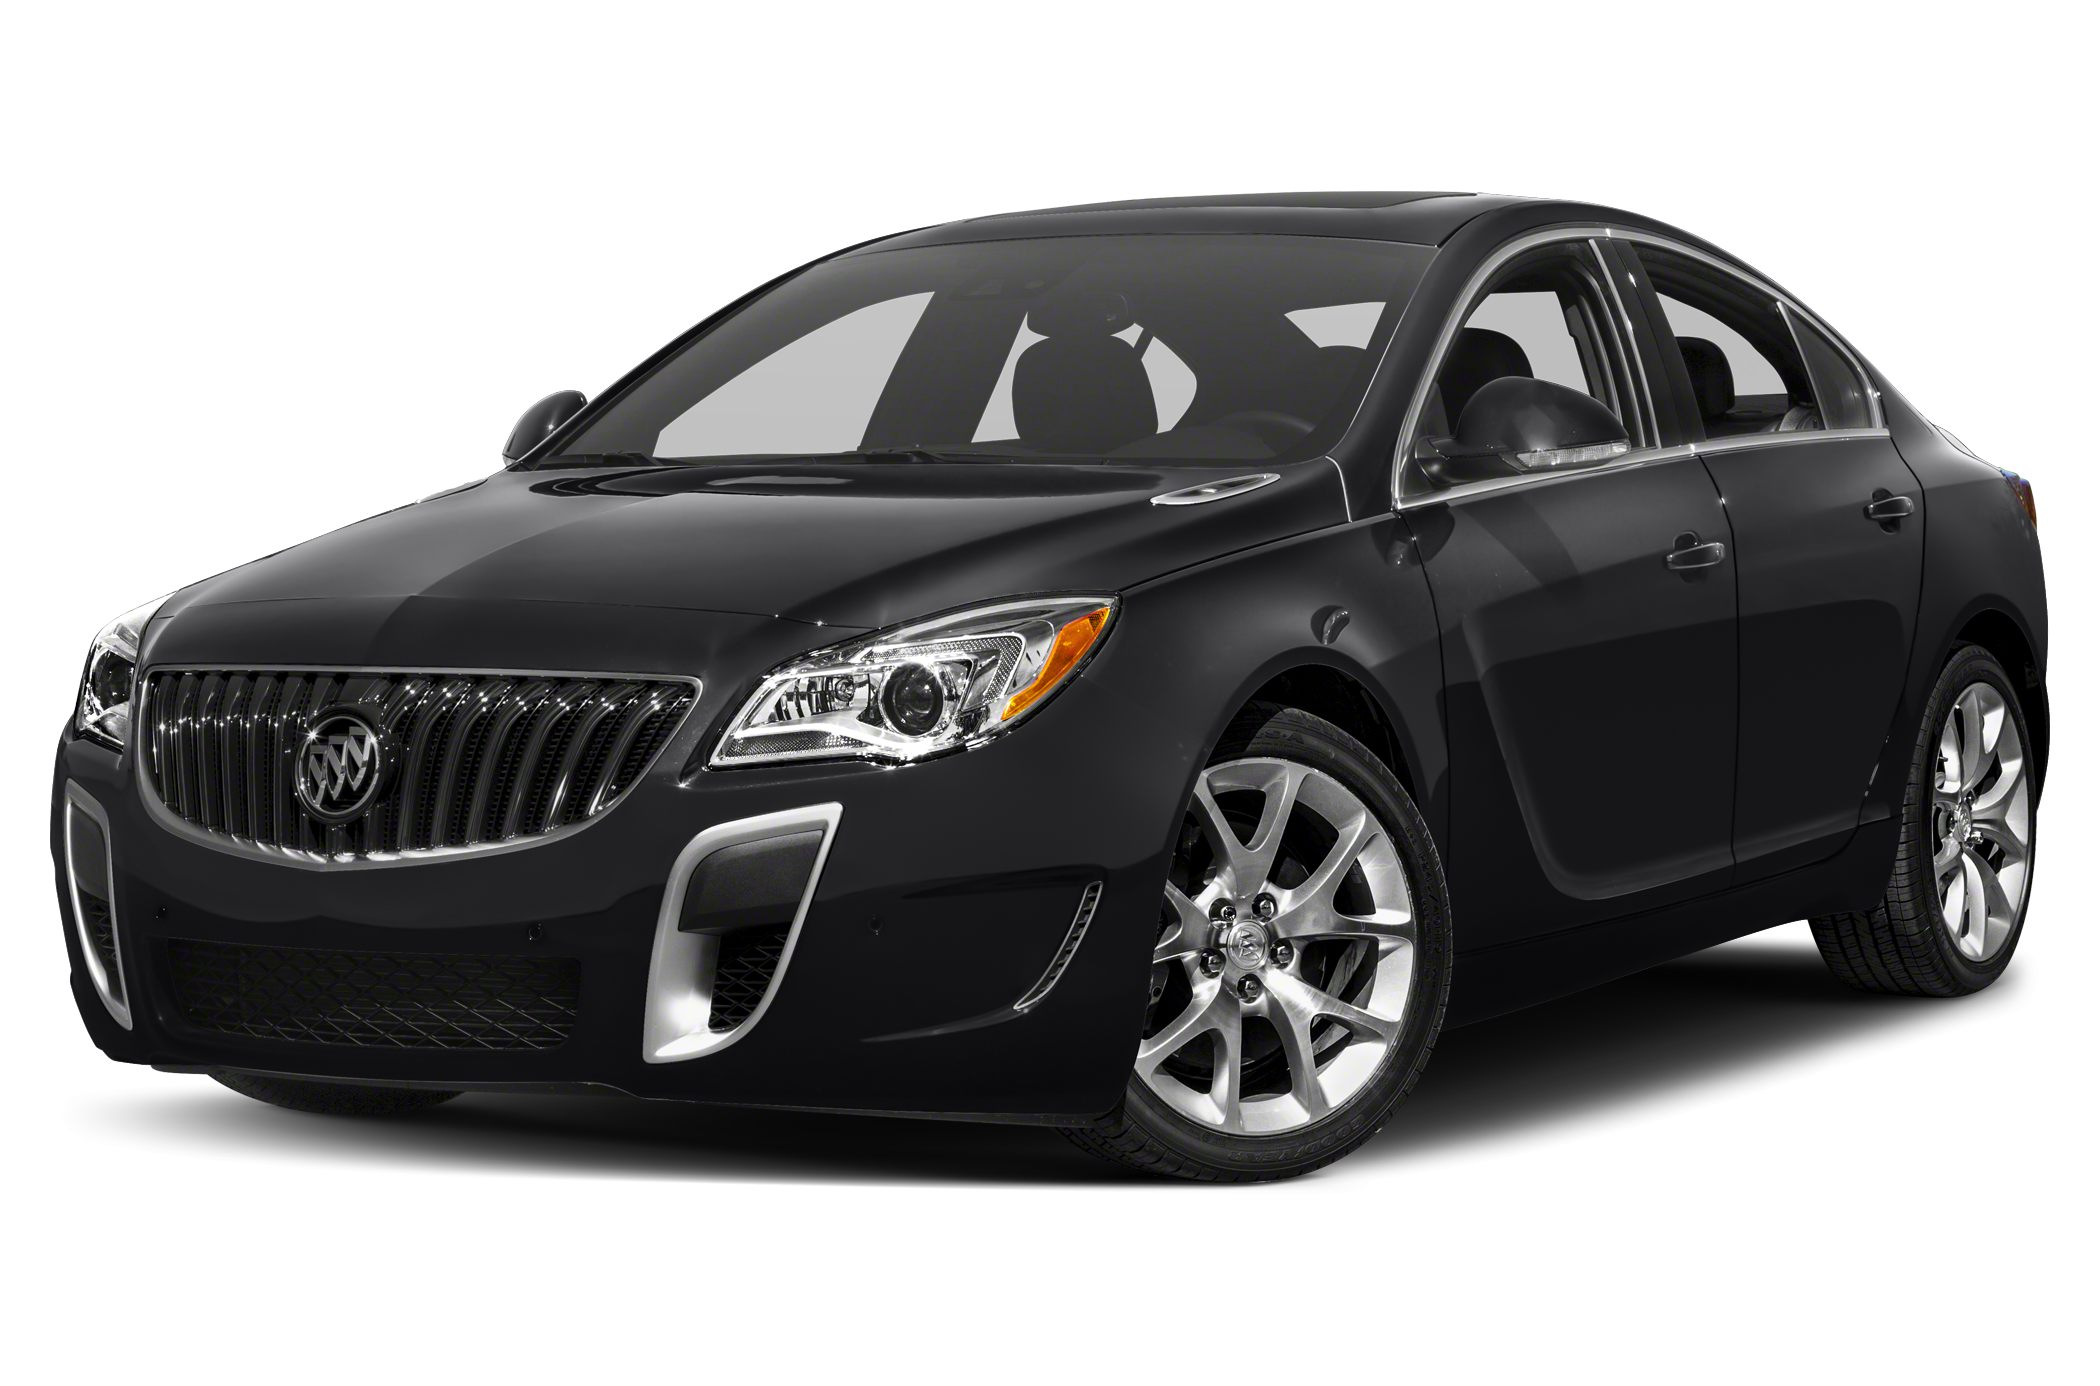 2015 Buick Regal GS Armed with a backup sensor push button start remote starter parking assista